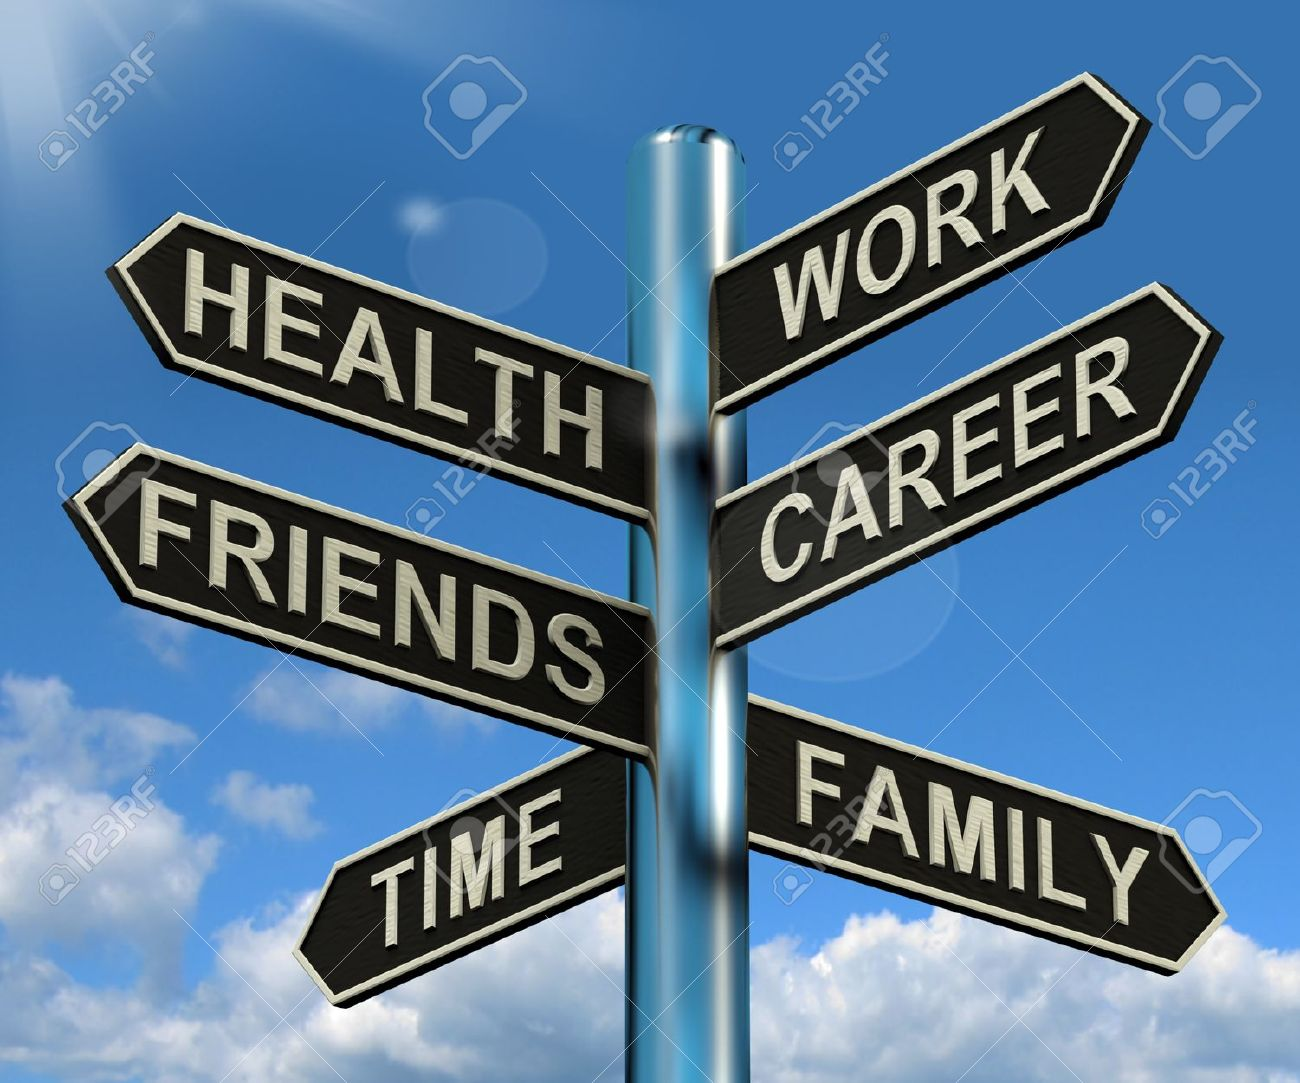 health work career friends signpost shows life and lifestyle health work career friends signpost shows life and lifestyle balance stock photo 13564606